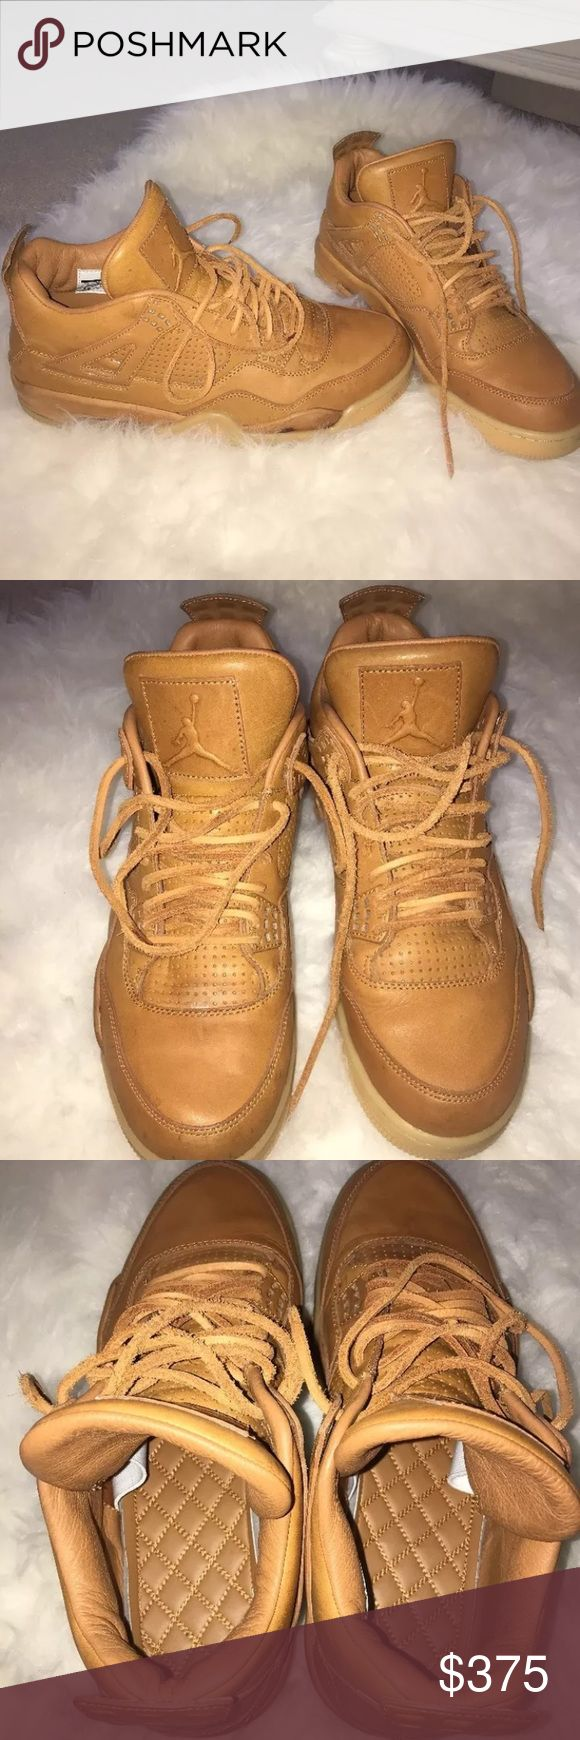 Nike Air Jordan 4 retro premium ginger These are going for $700+ everywhere! I have no box and there is a little staining, but other than that they look brand new! Size 11 men! Super rare and in high demand Air Jordan Shoes Sneakers